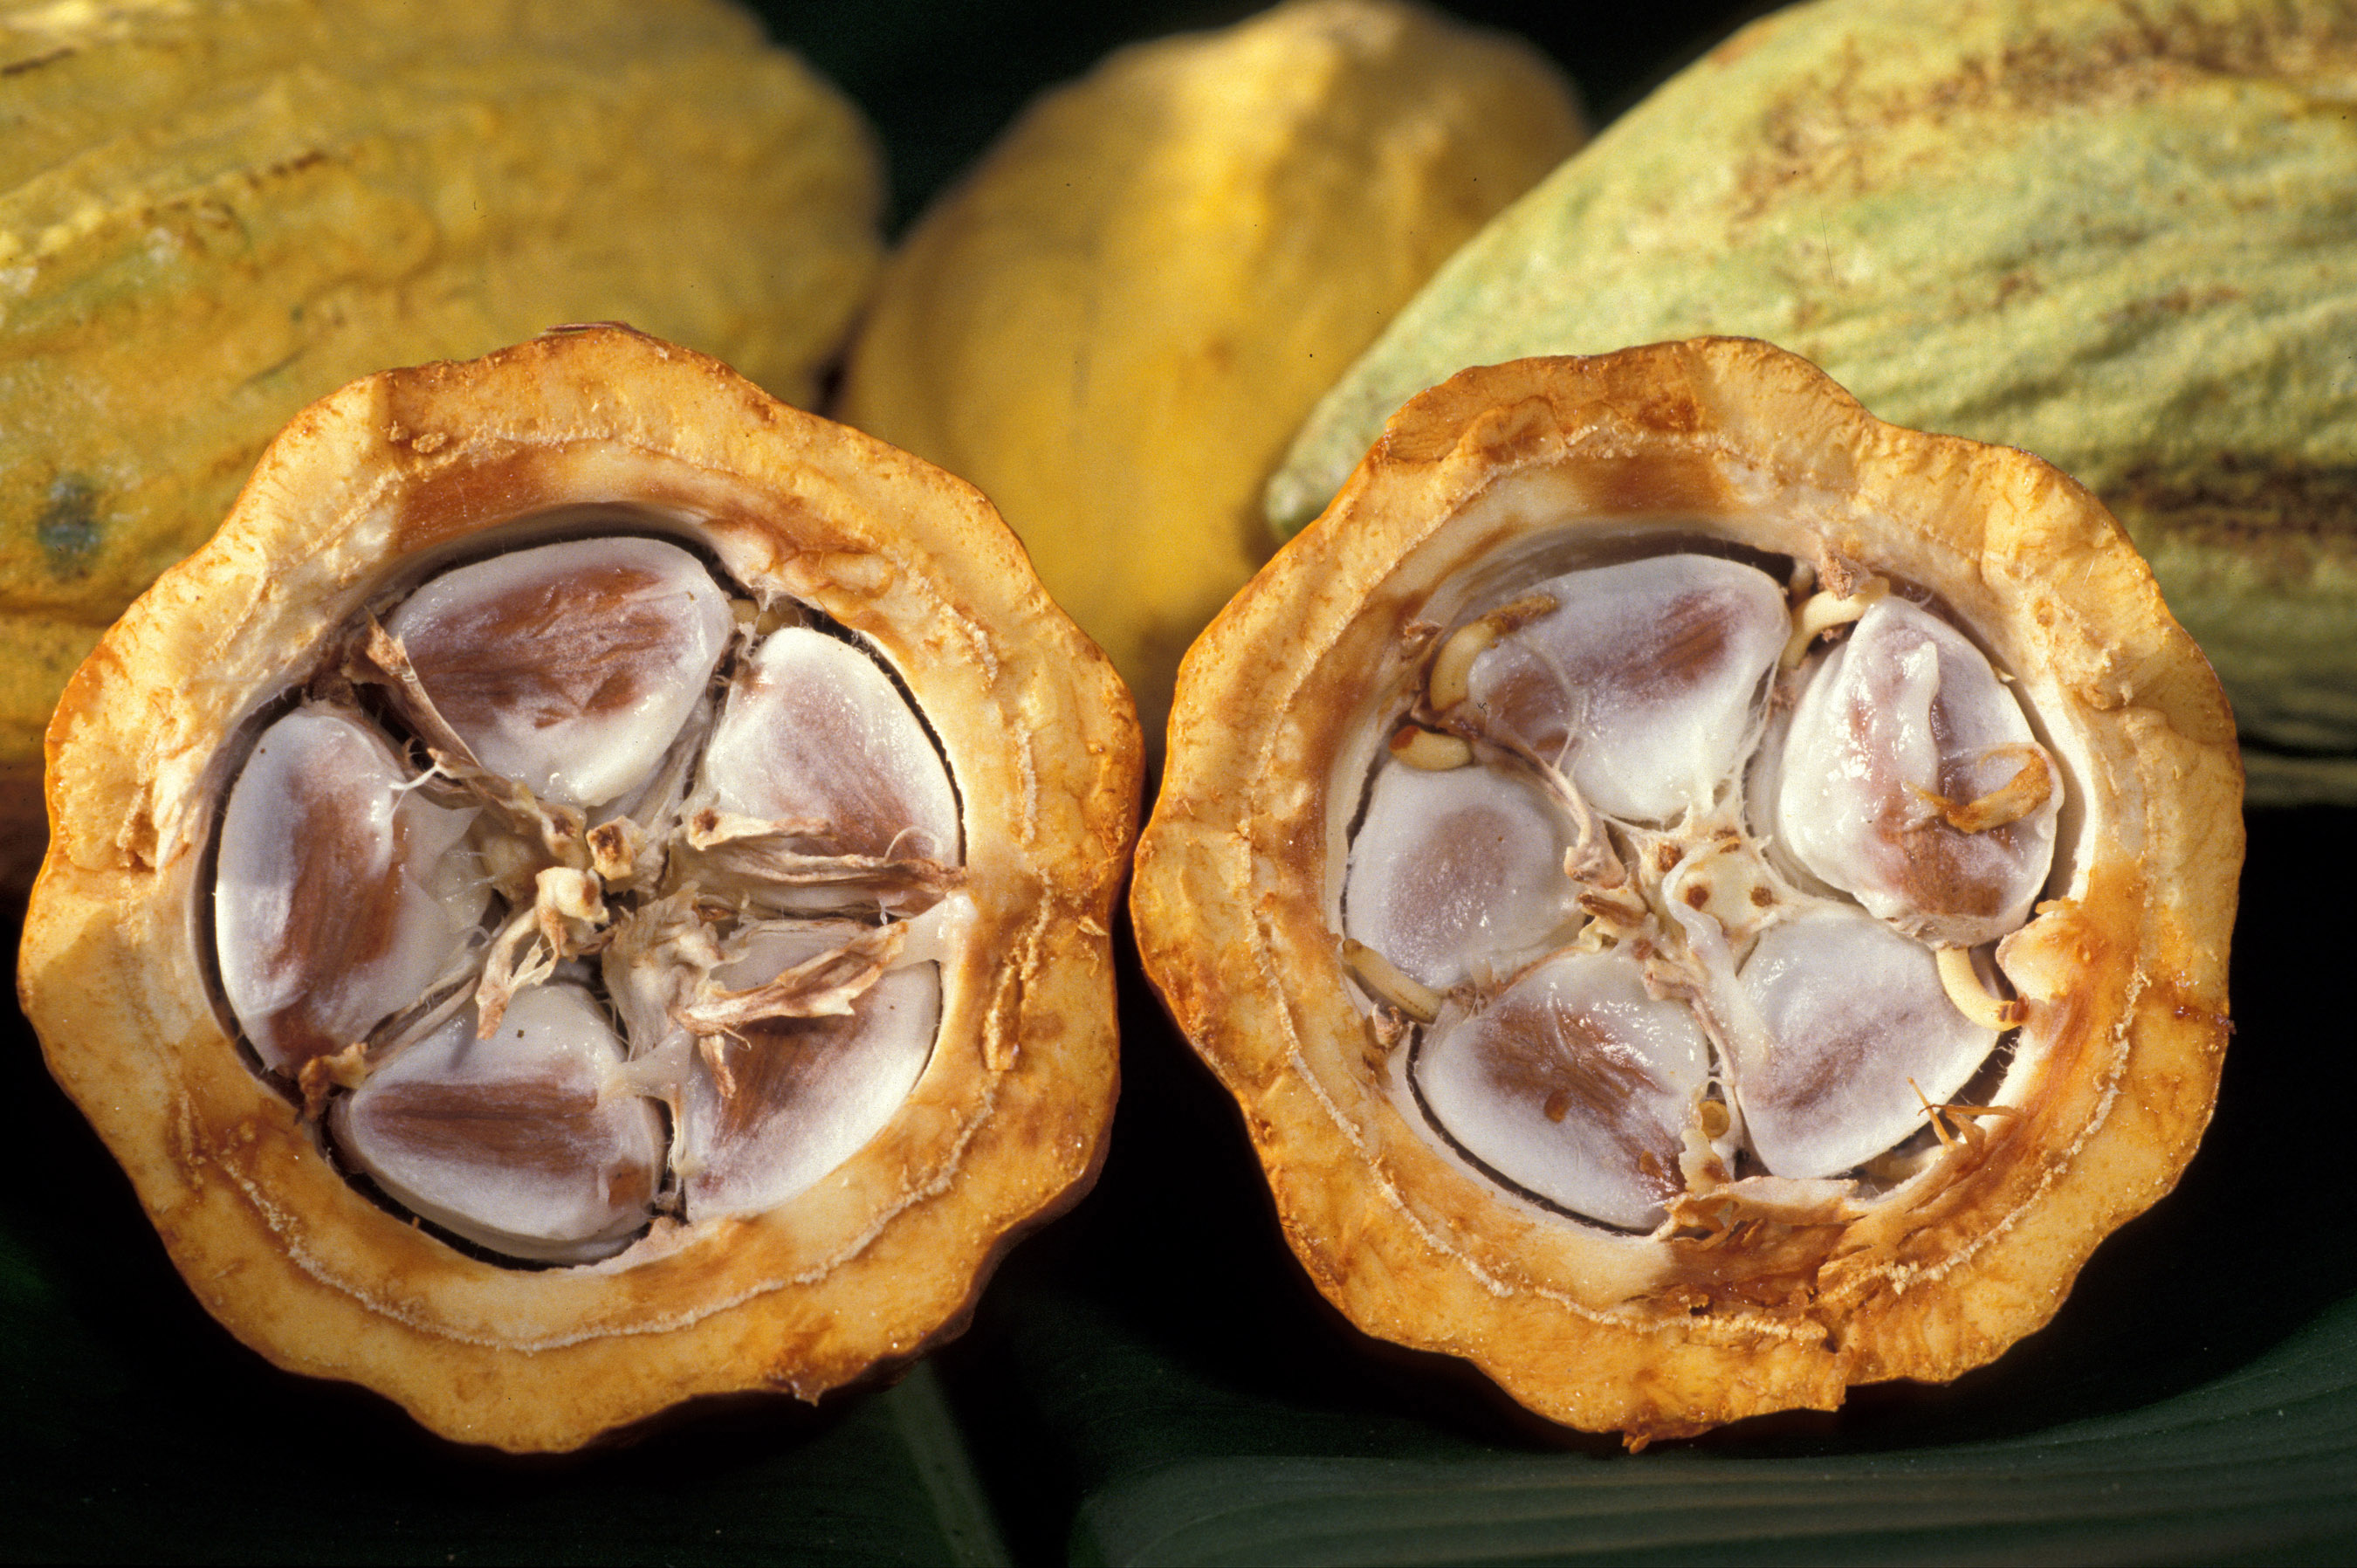 Cocoa production in Ivory Coast - Wikipedia